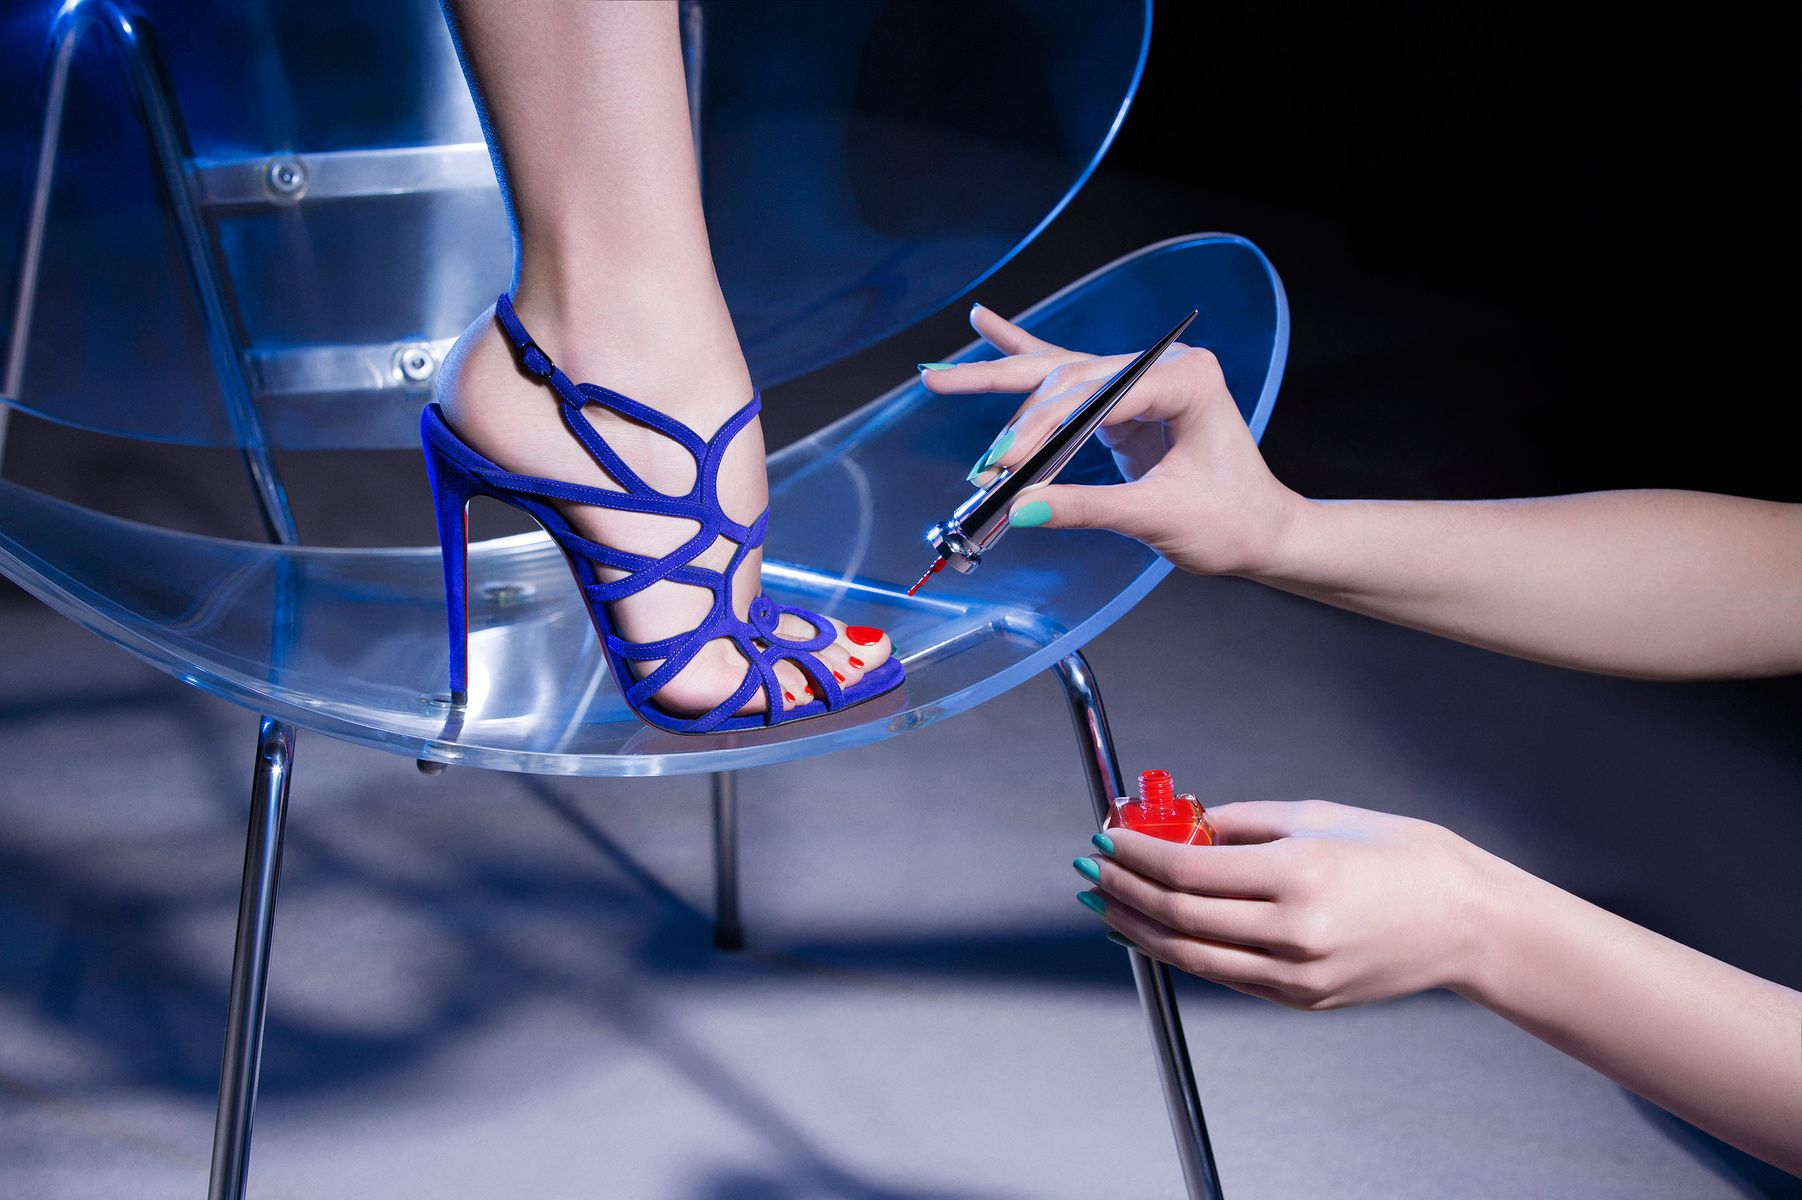 Guillaume Thomas - Cage Sandals for Christian Louboutin